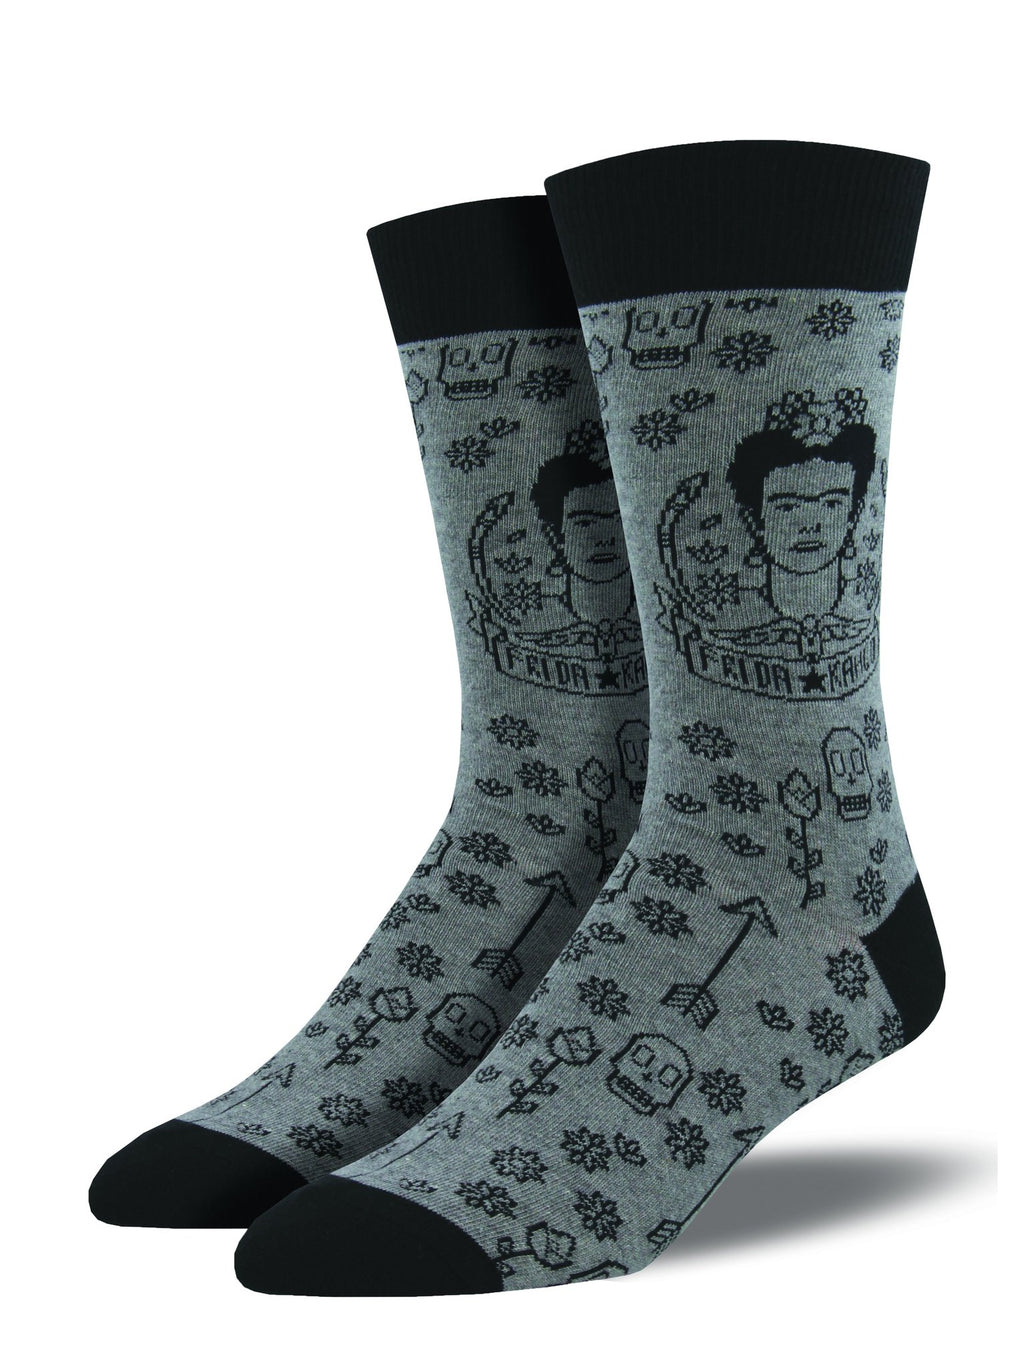 Frida Freak Men's Sock